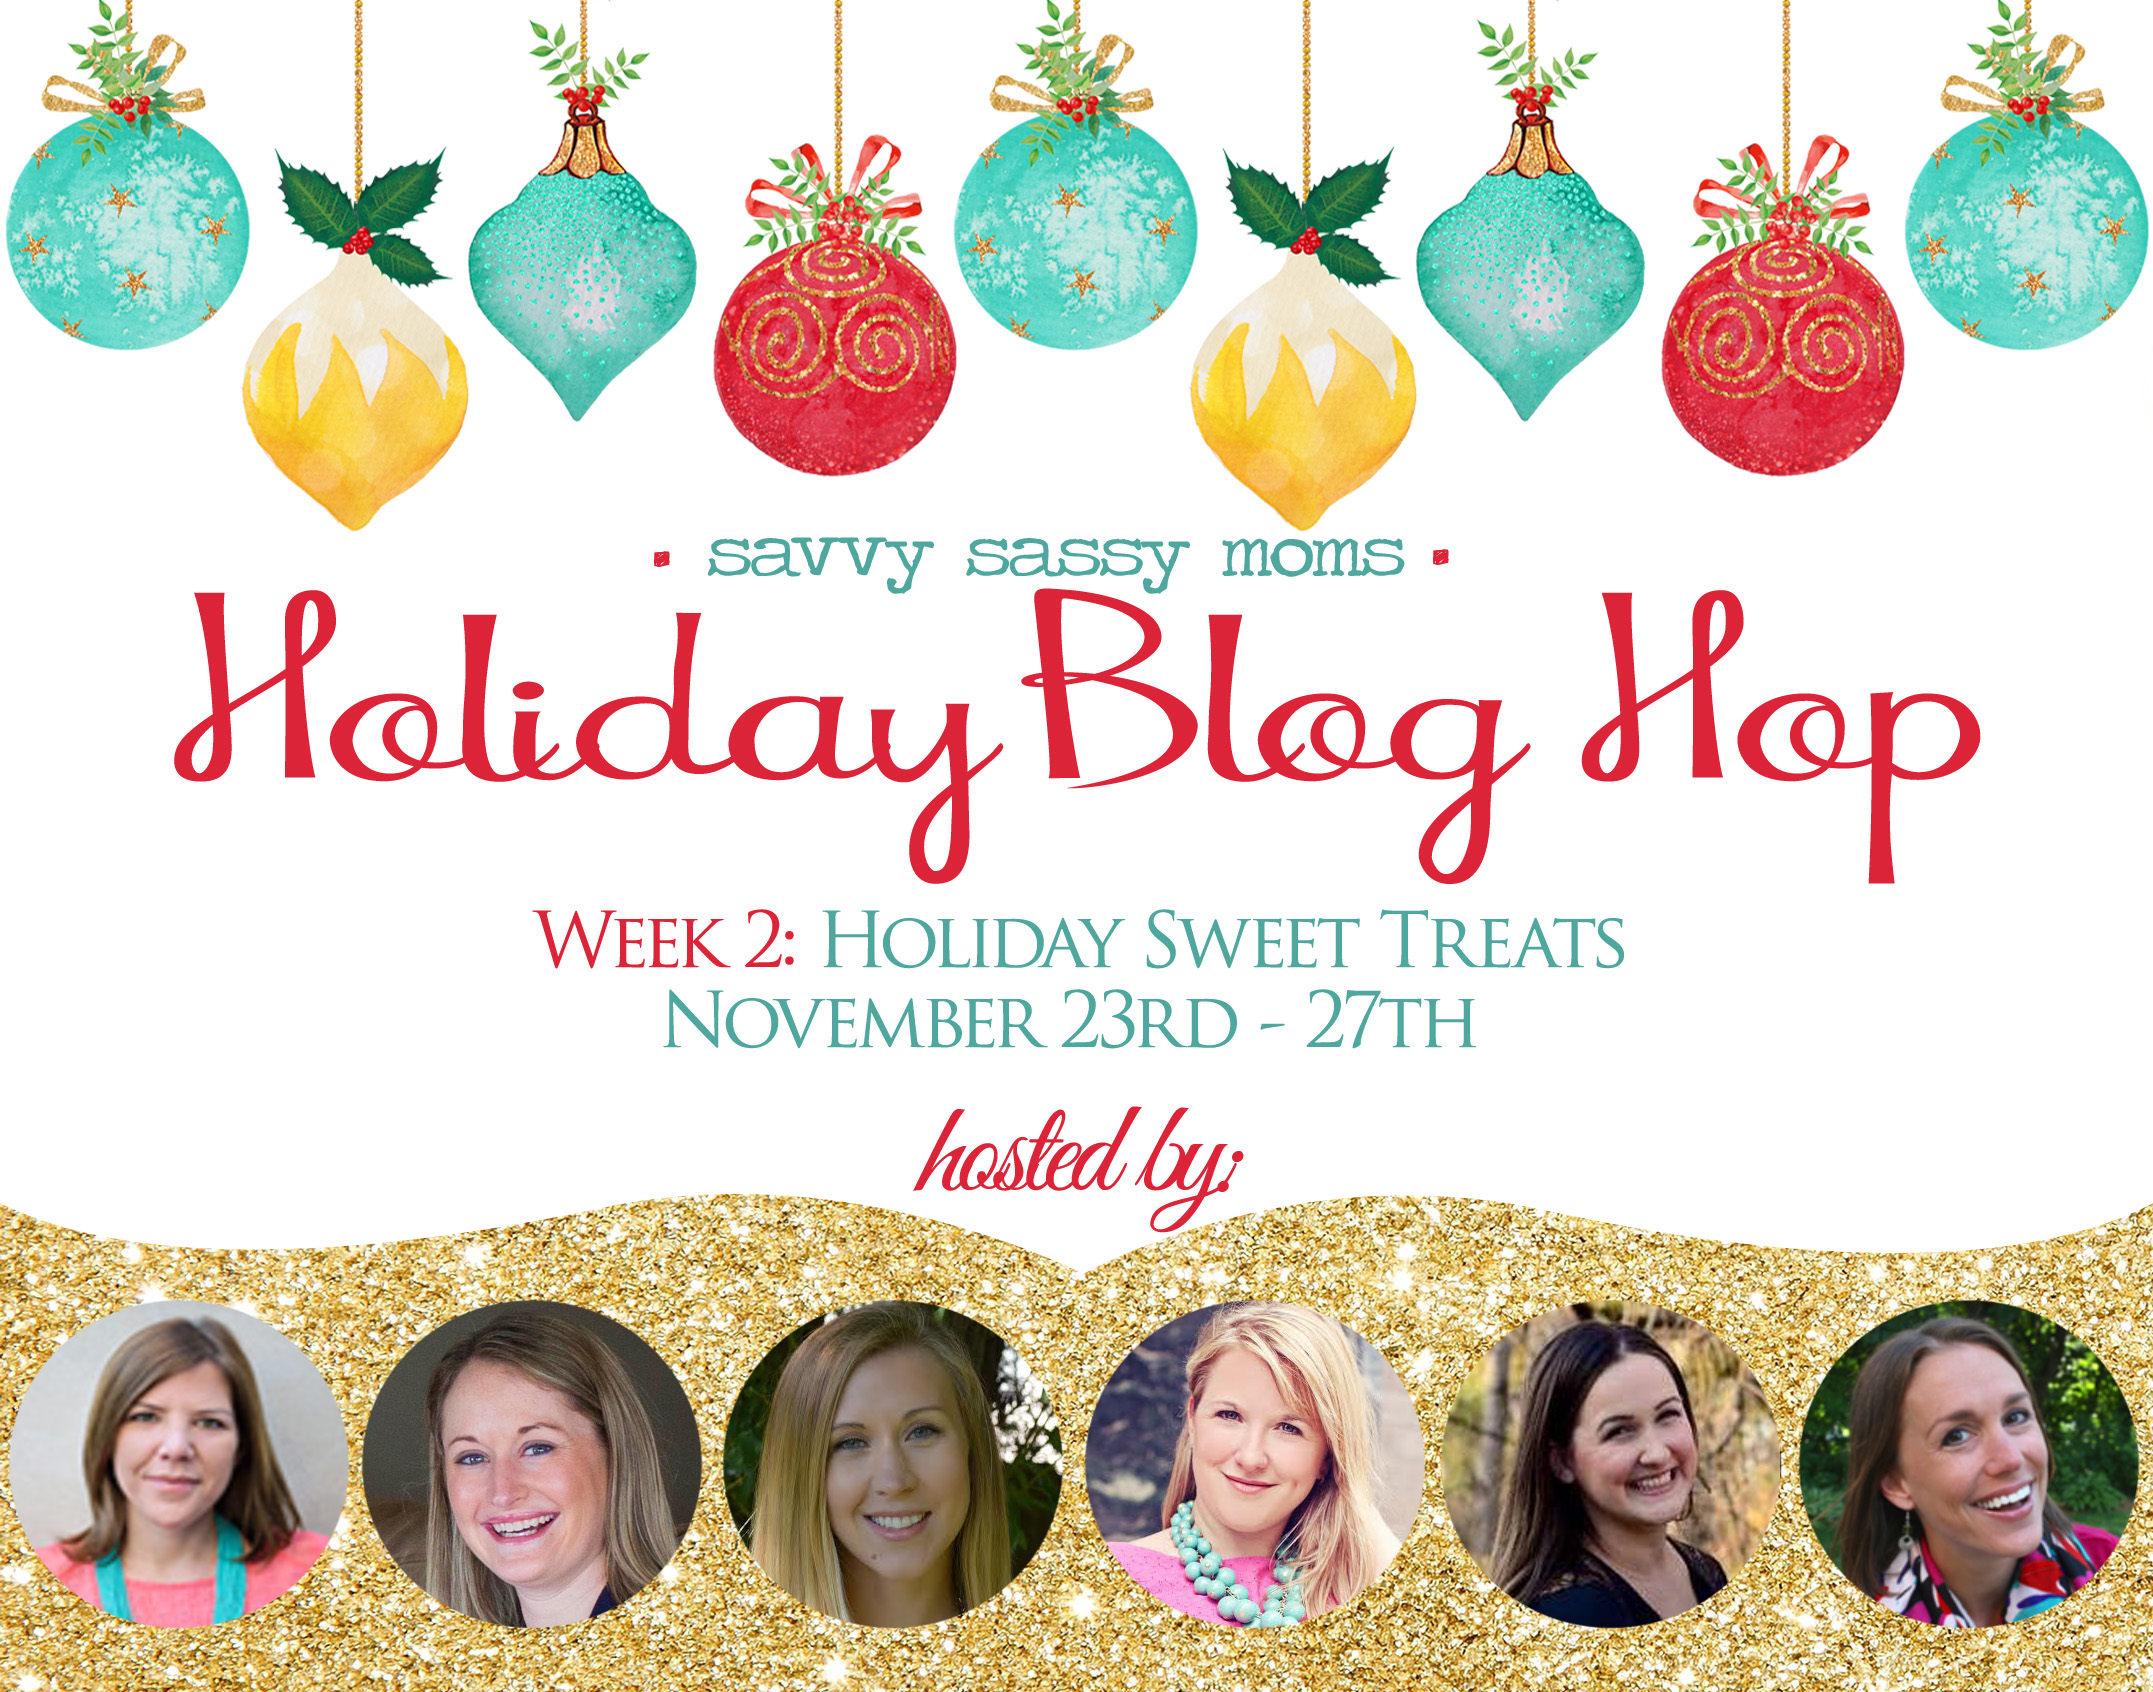 Holiday Blog Hop on Savvy Sassy Moms